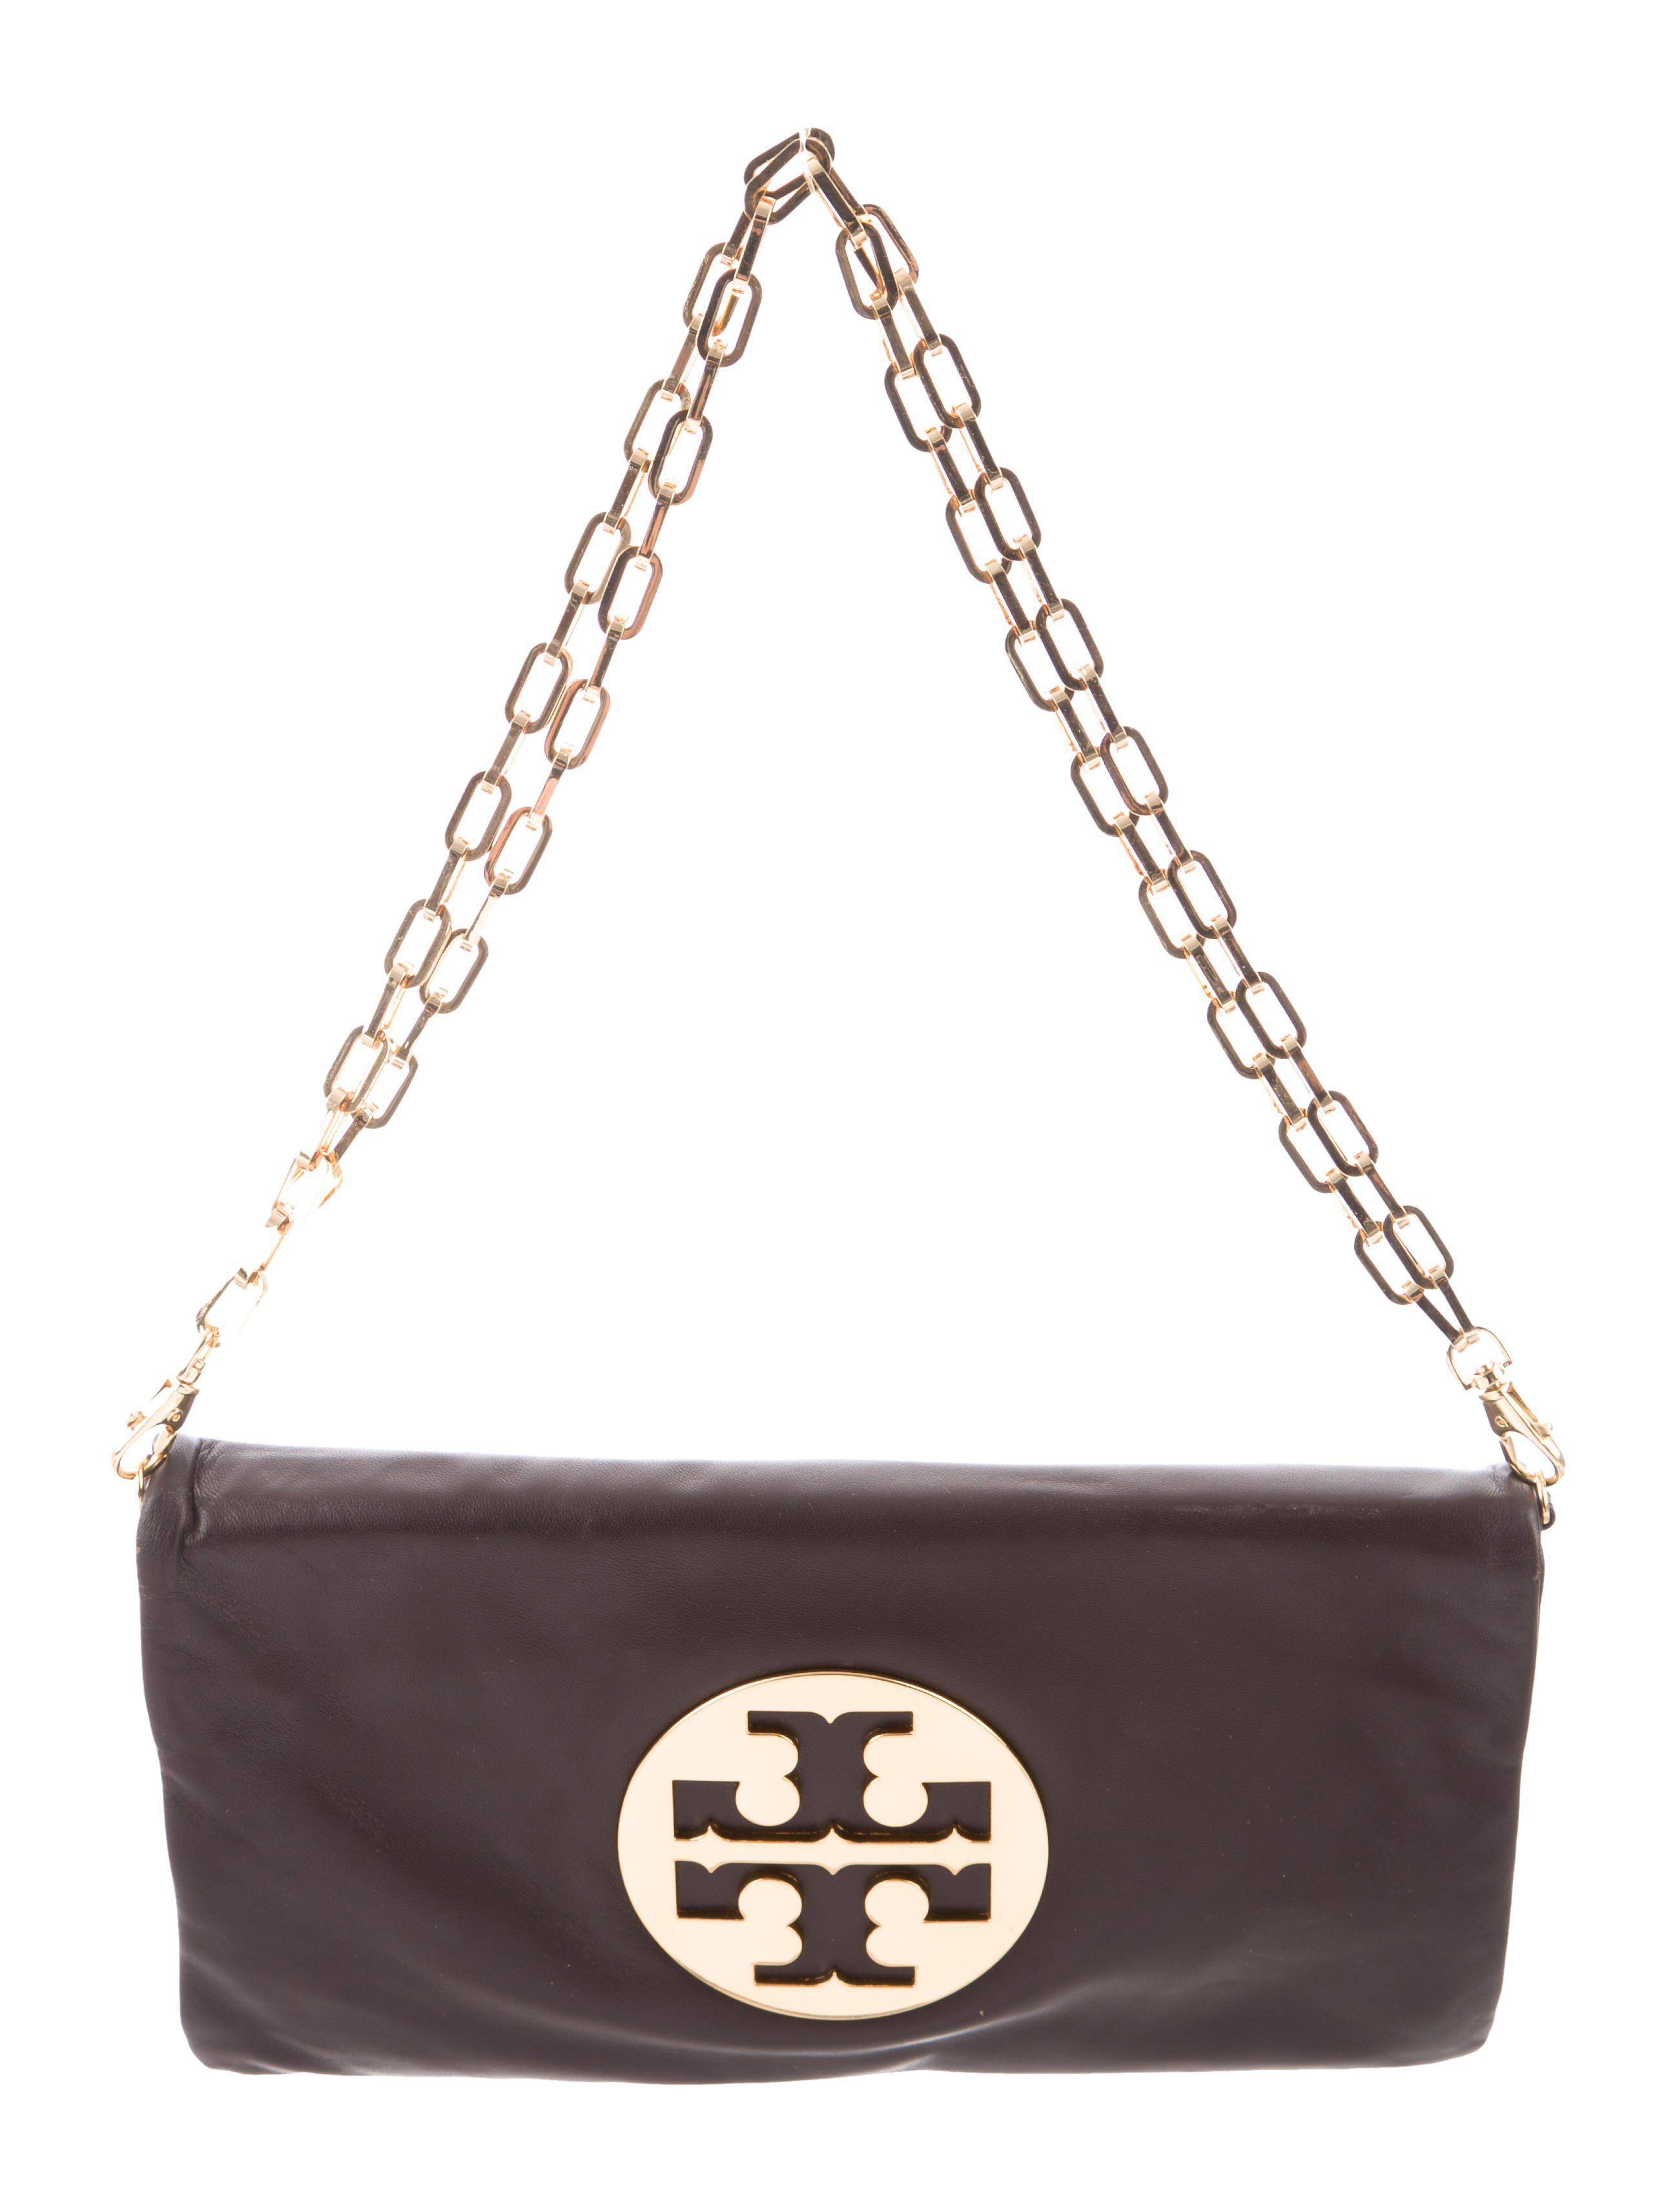 9183bce827a Lyst - Tory Burch Leather Logo Bag Brown in Metallic